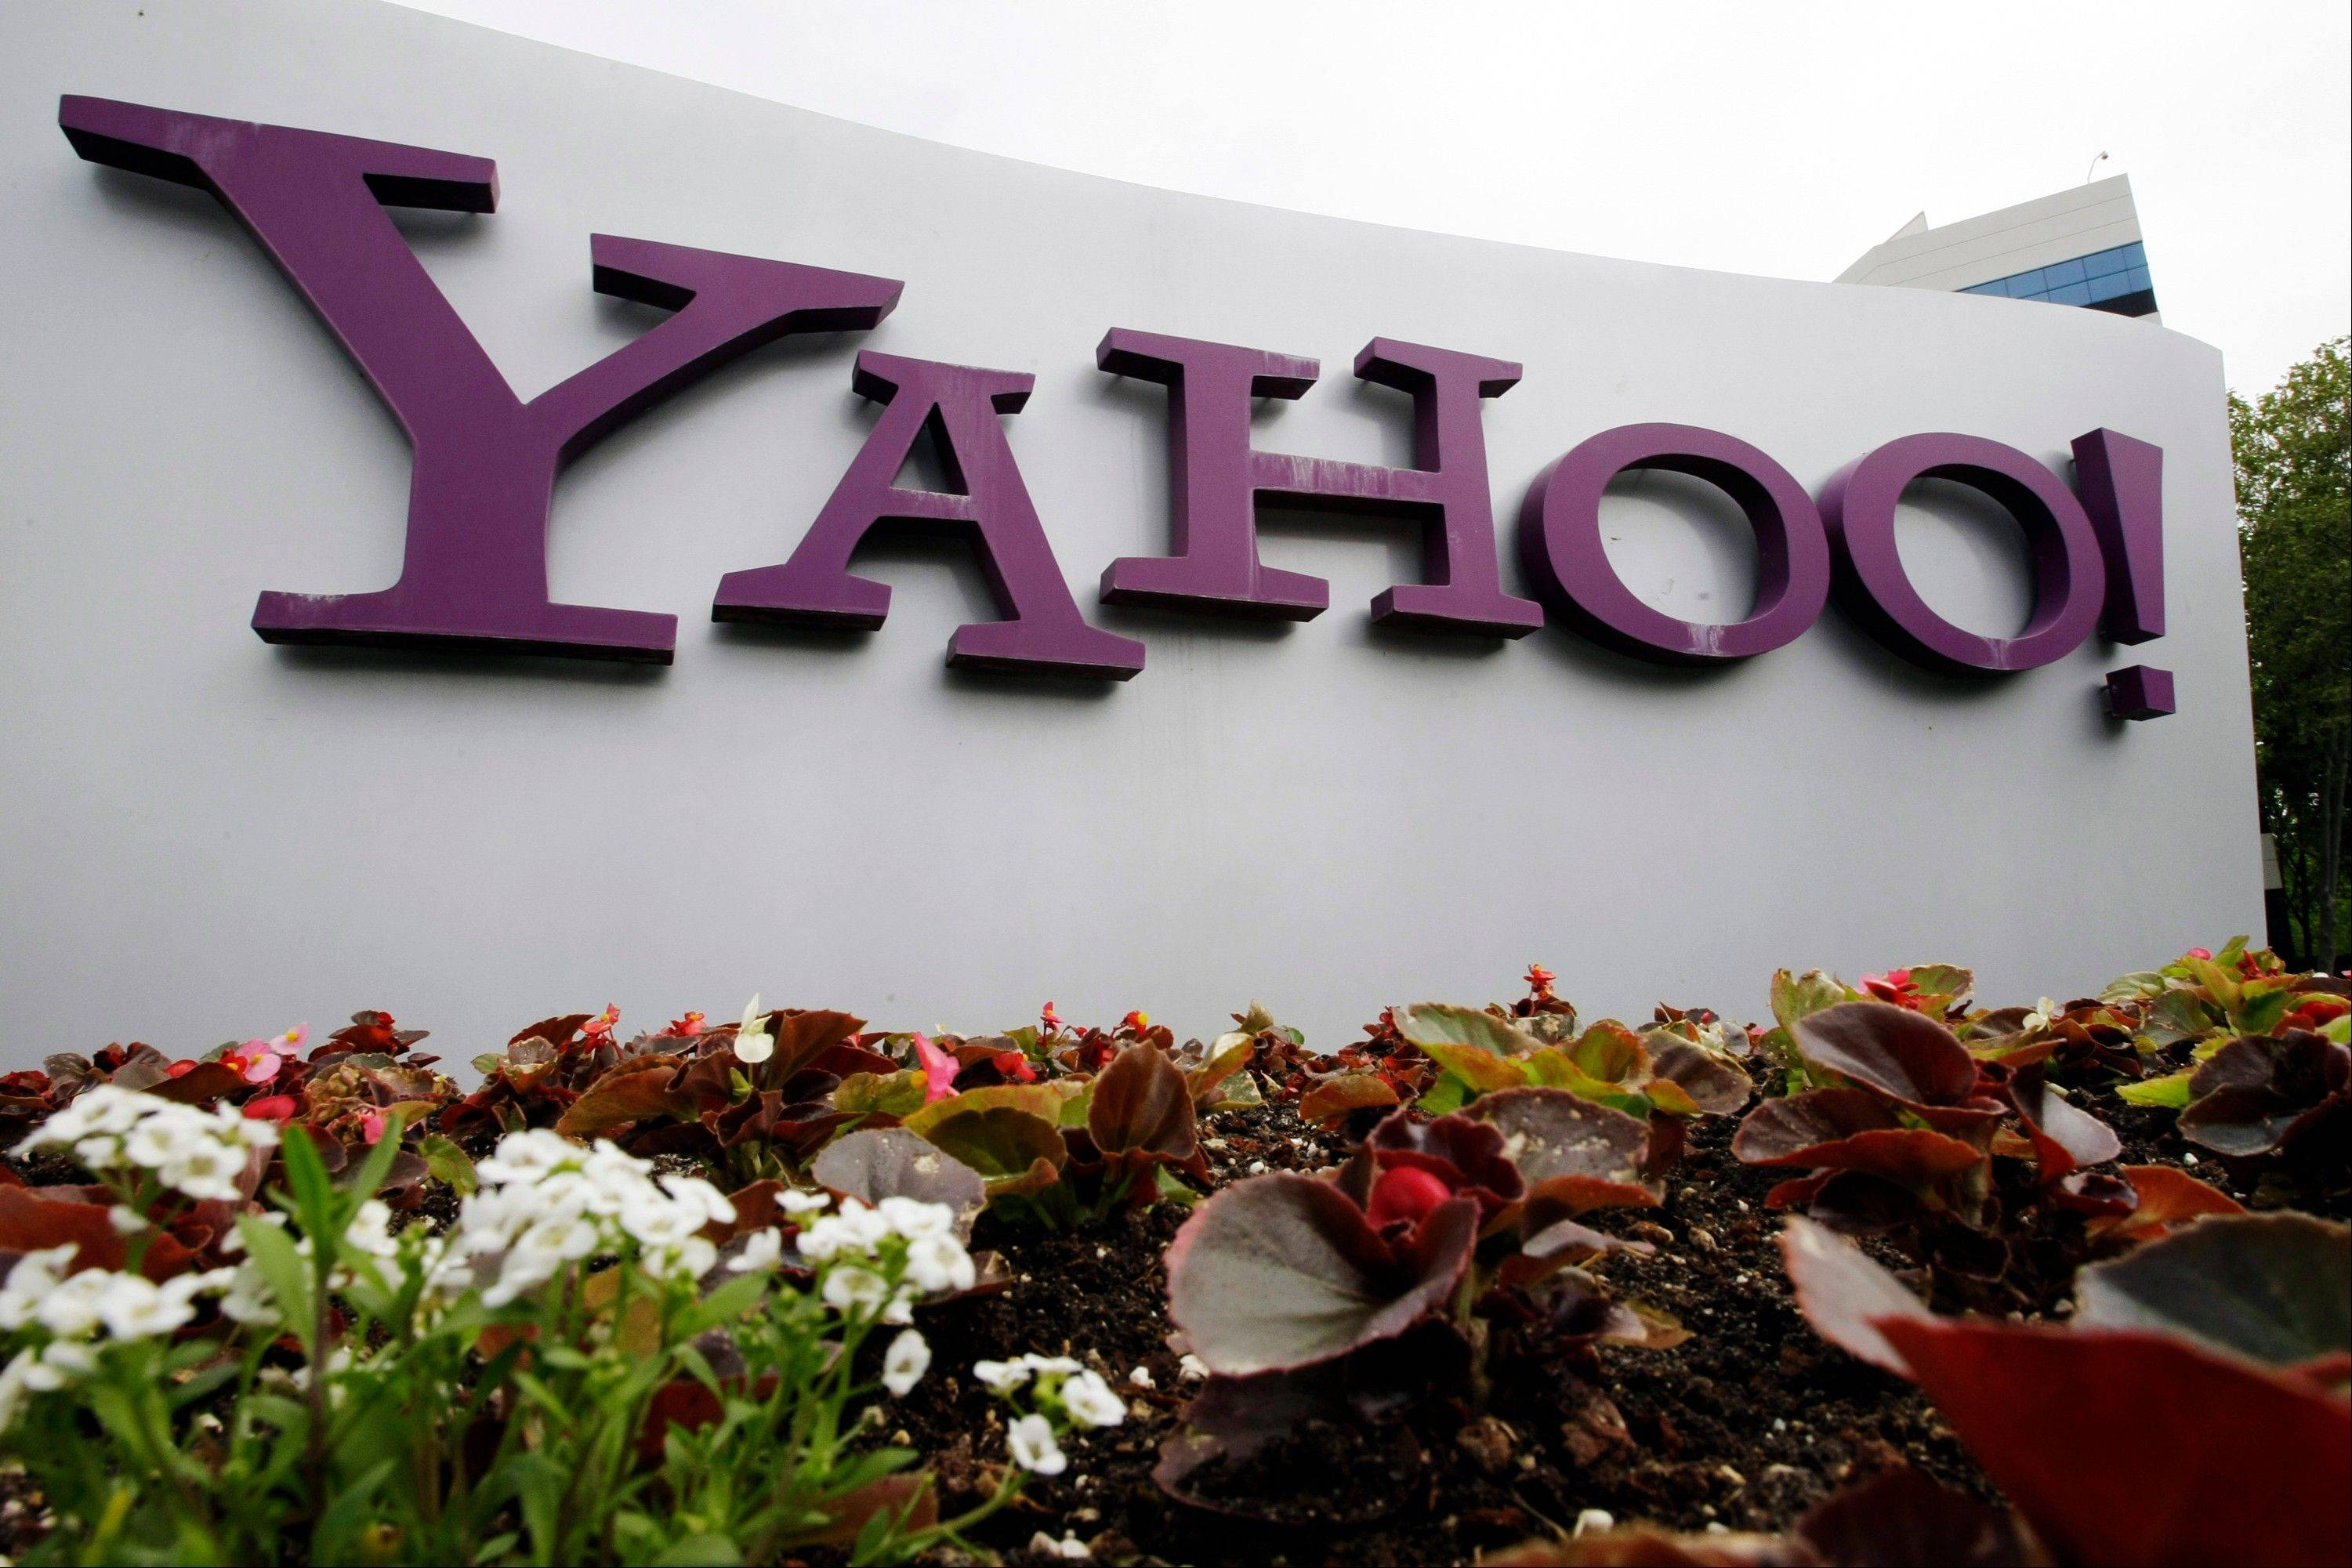 Yahoo has pledged to encrypt all of its internal network communications by the end of the first quarter of 2014. It's a timely step for Yahoo, which has mostly lagged behind other tech companies when it comes to user privacy.